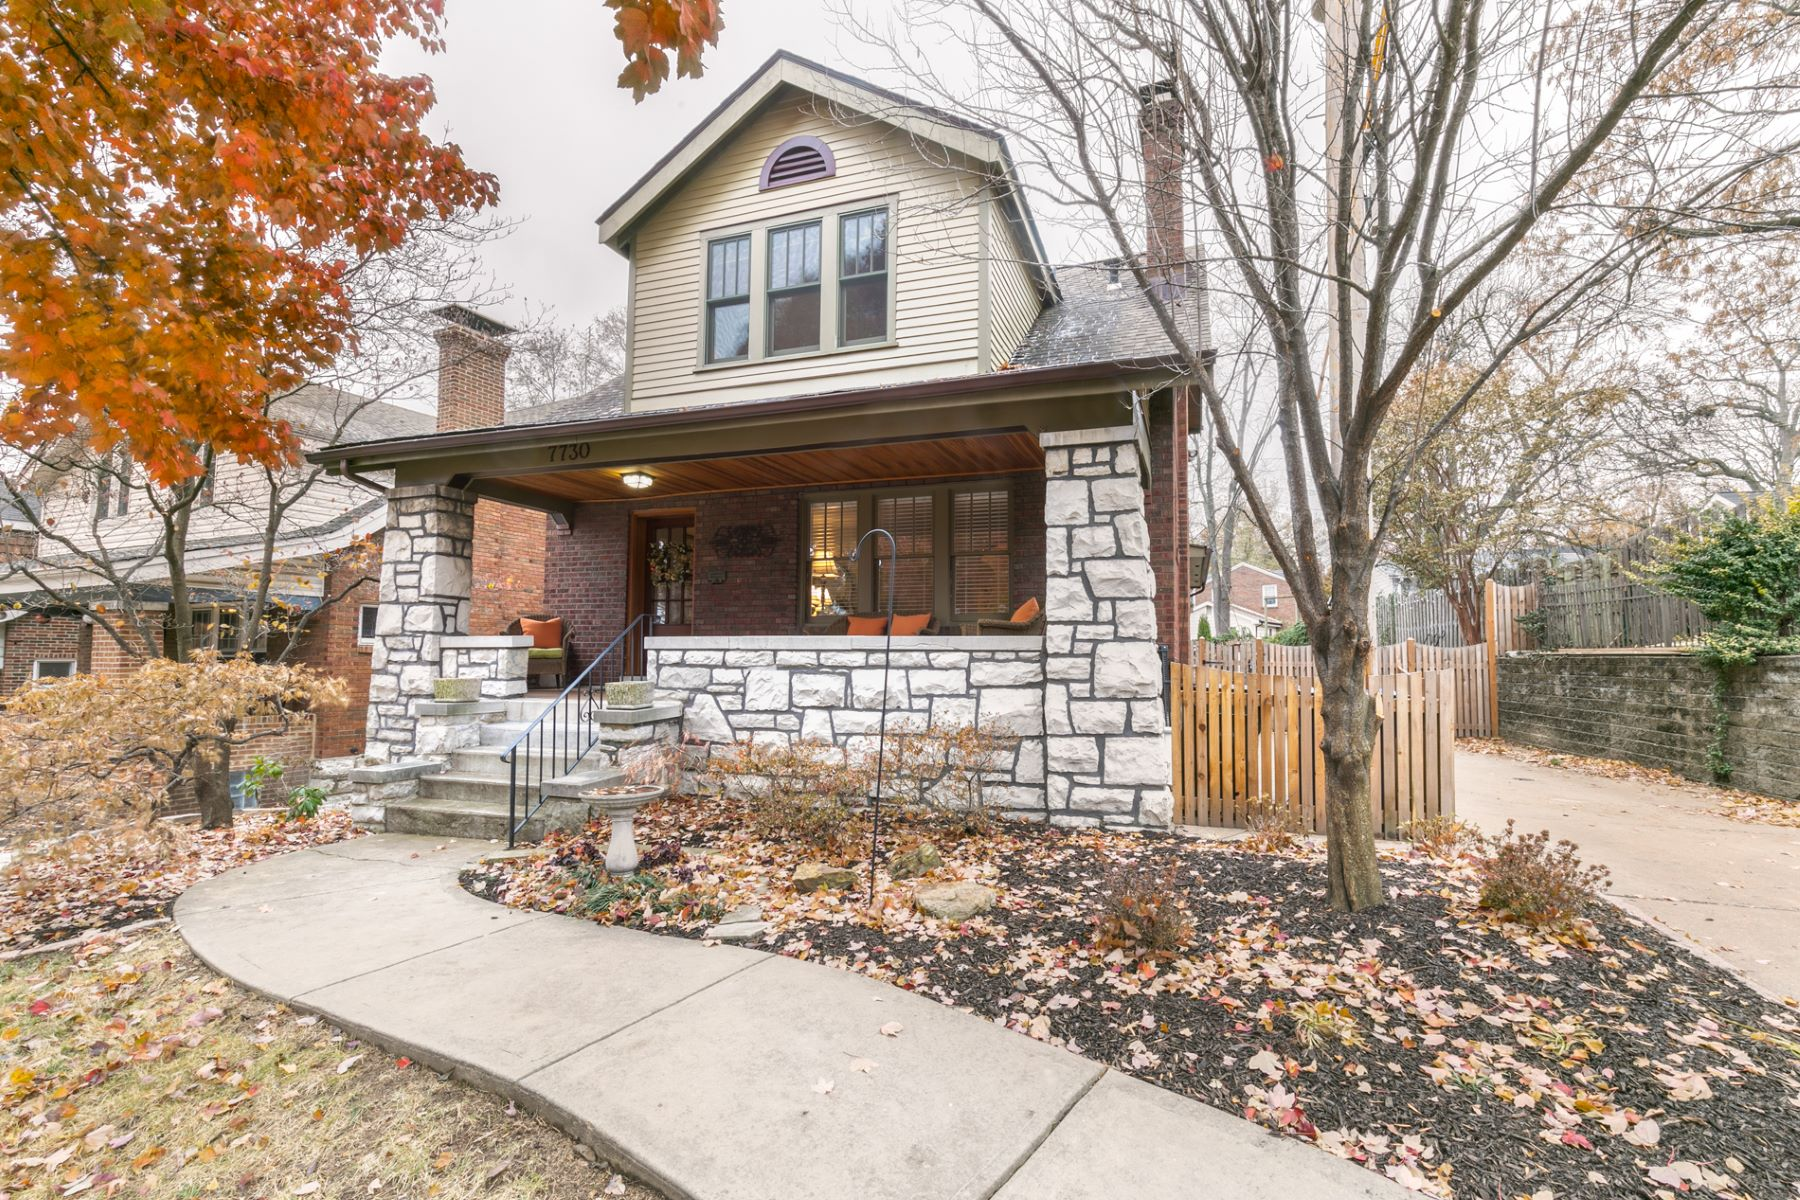 Property for Sale at Lile Ave 7730 Lile Ave St. Louis, Missouri 63117 United States